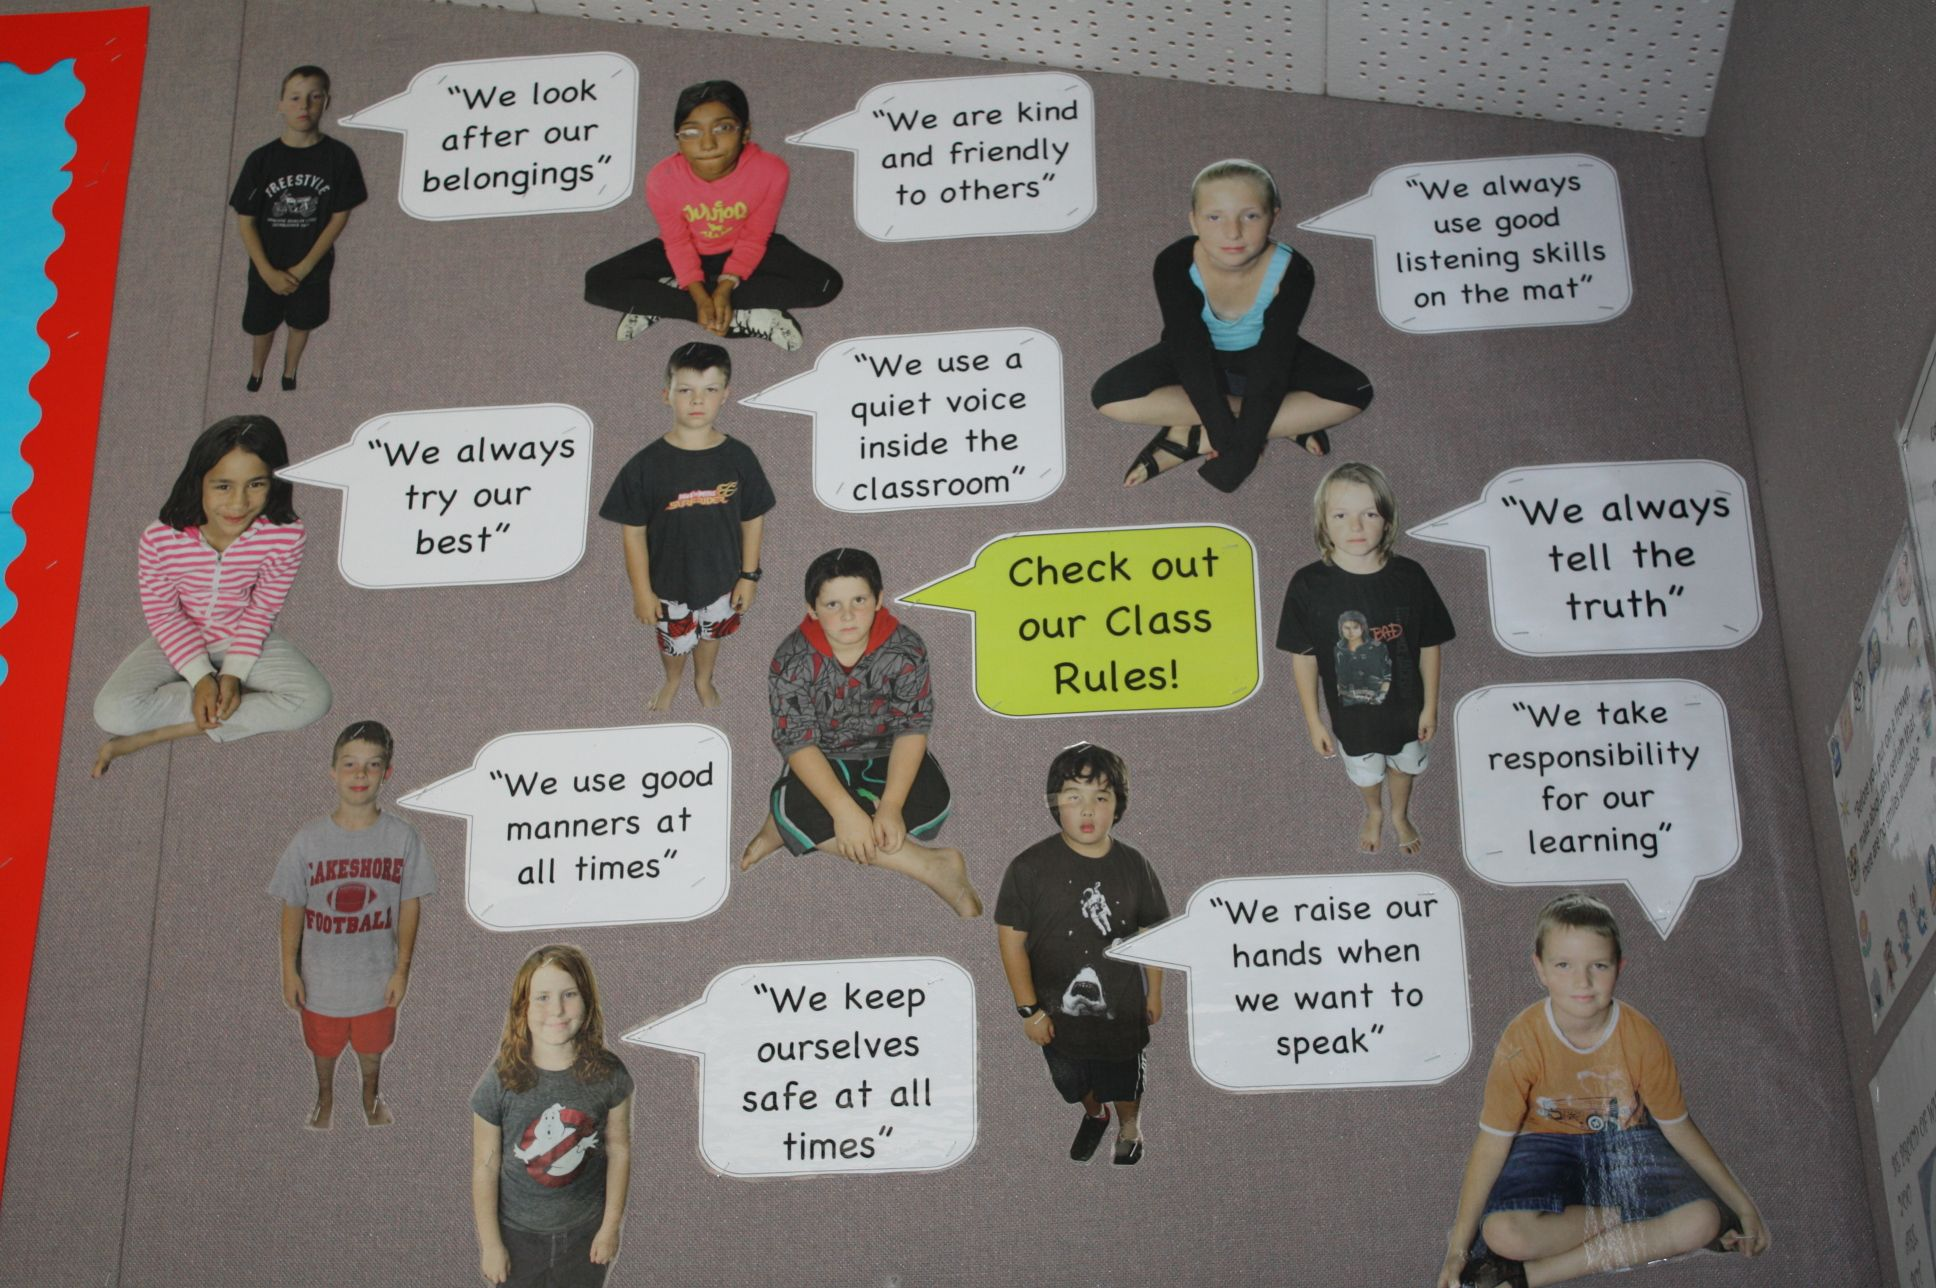 If you like to use student-generated classroom rules, this is a creative way to foster ownership of the rules.